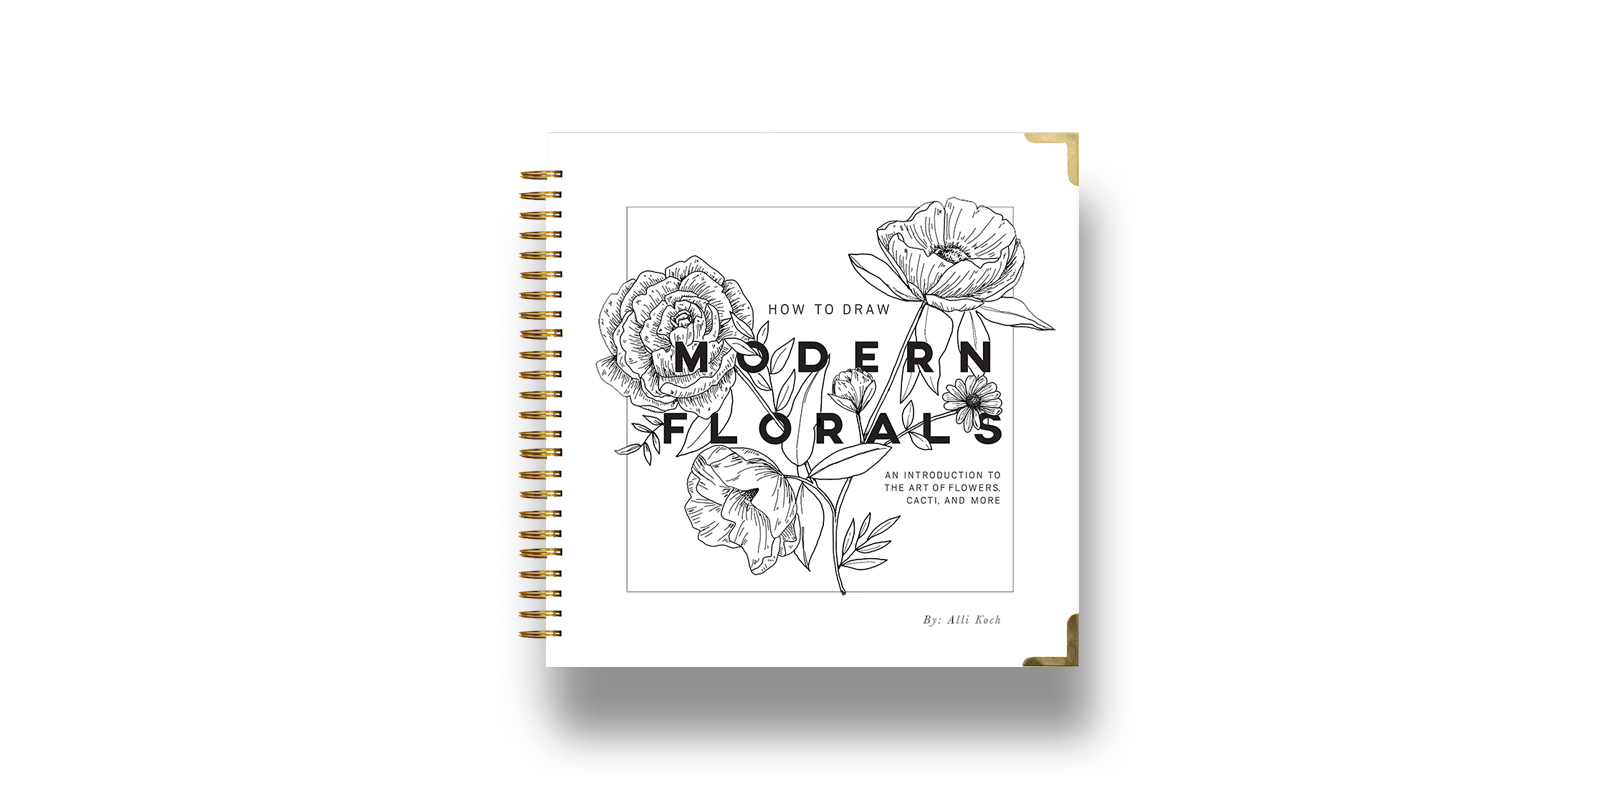 How To Draw Modern Florals Best Illustration Books